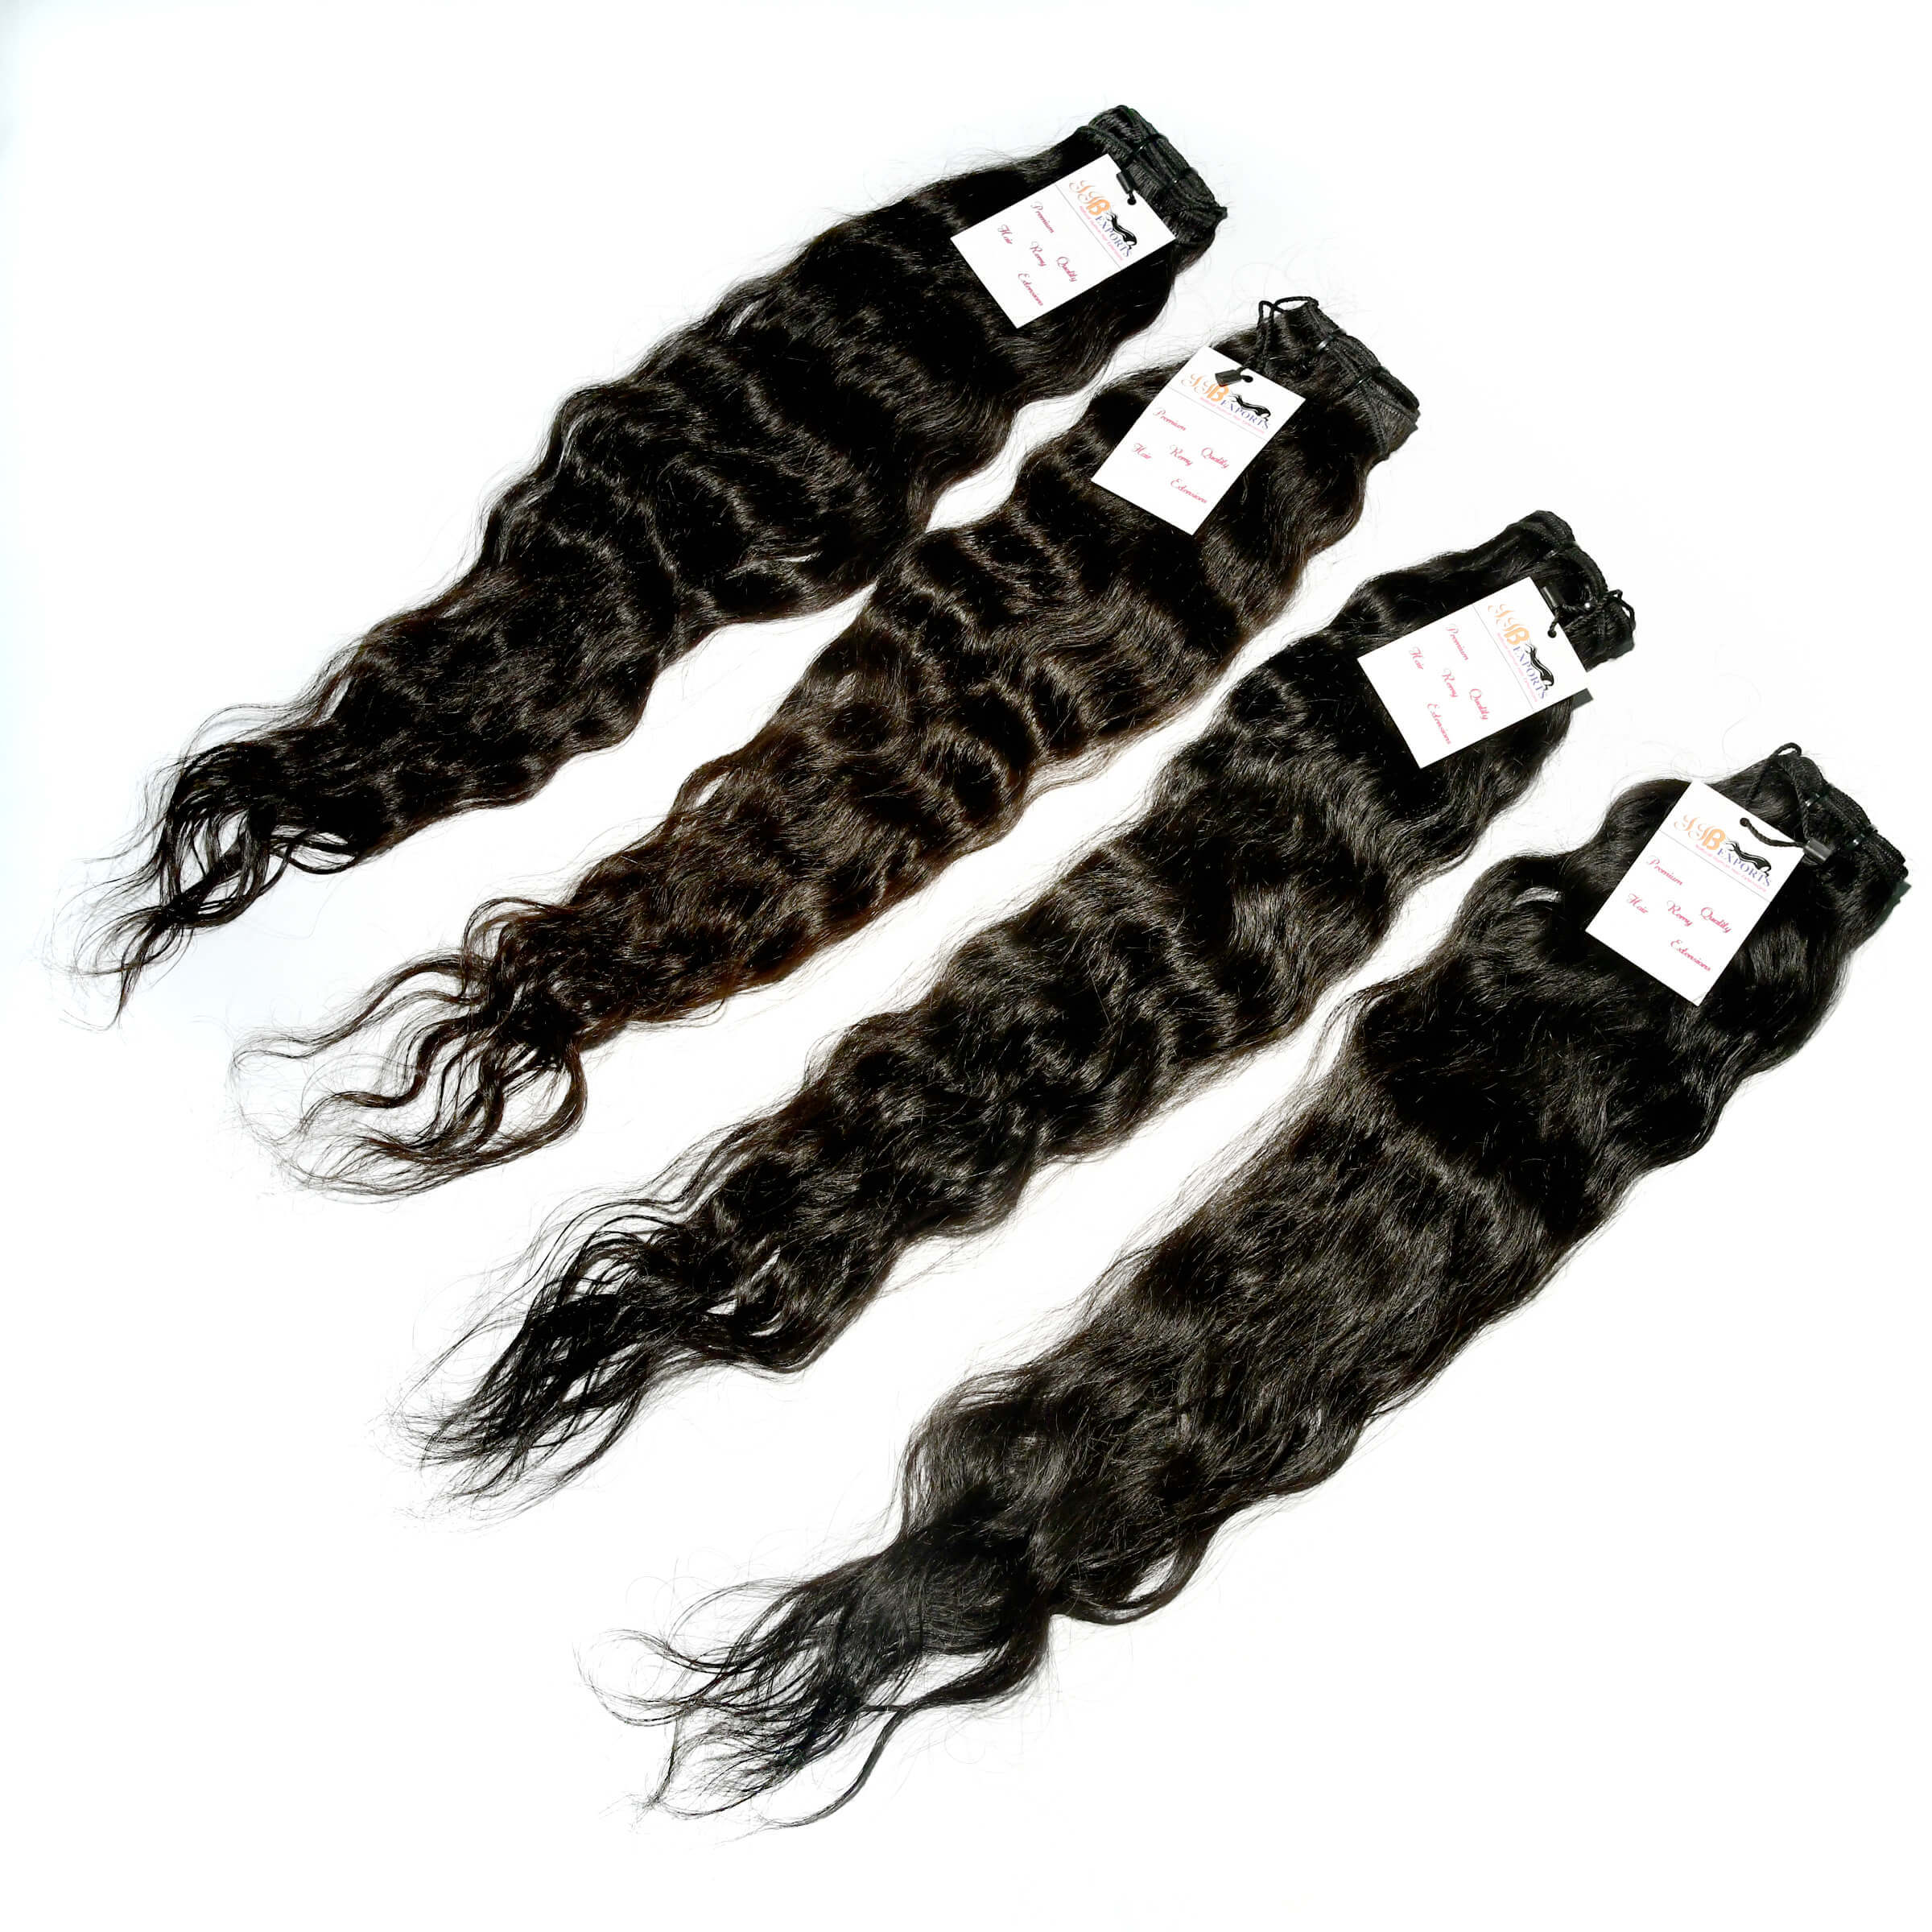 Indian Natural Cuticle Aligned Raw Virgin Remy Curly Human Hair Extensions